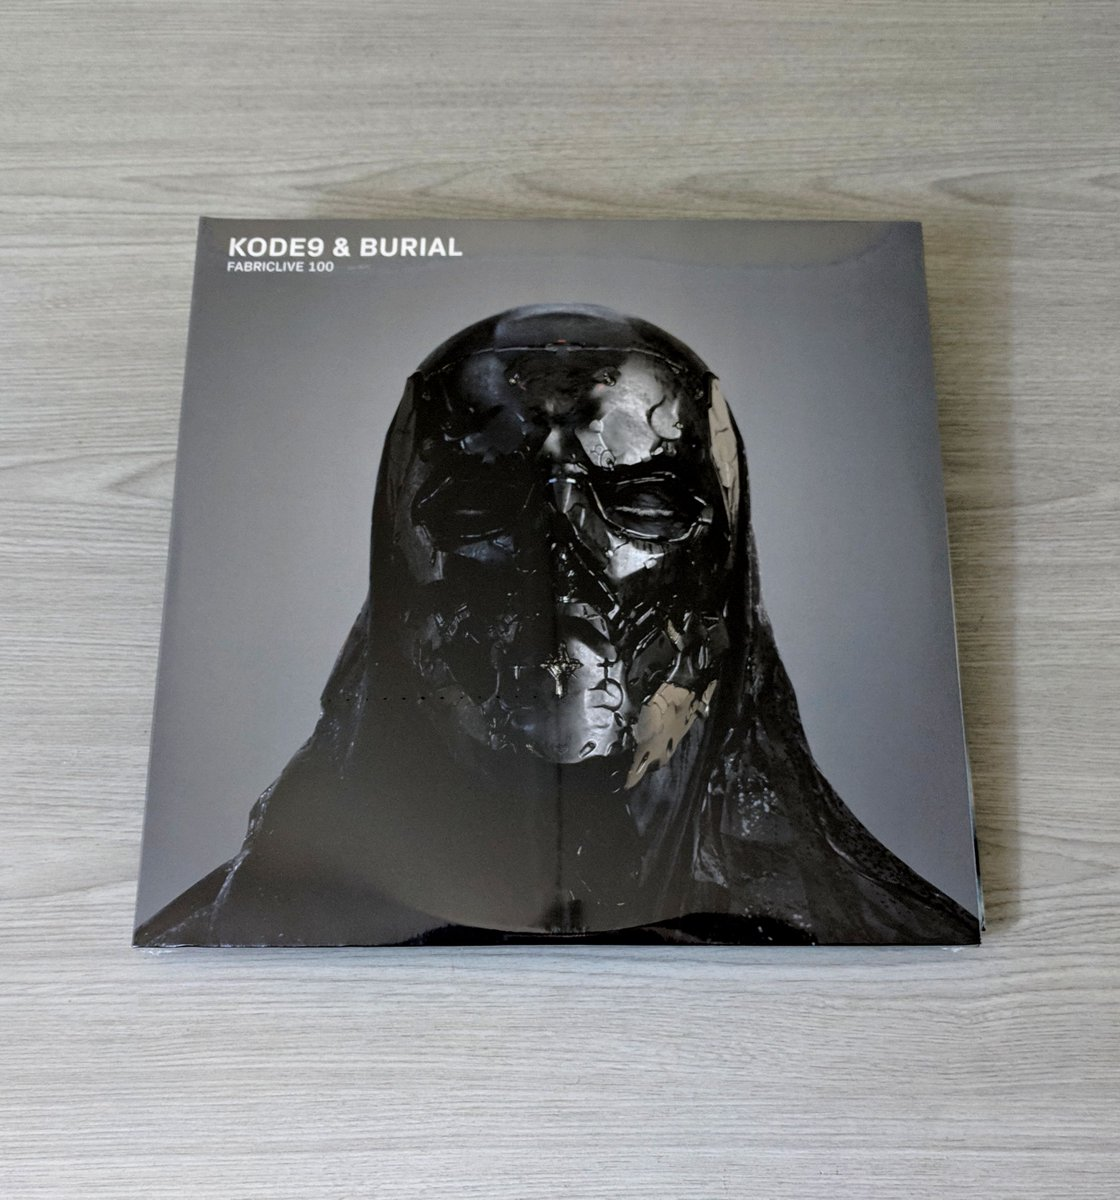 SALE: Kode9 and Burial – 'FABRICLIVE 100' - £15 for four LPs  Kode9 and Burial are electronic music royalty. Get this unique mix here:  https://www.normanrecords.com/records/172342-kode9-burial-fabriclive-100…